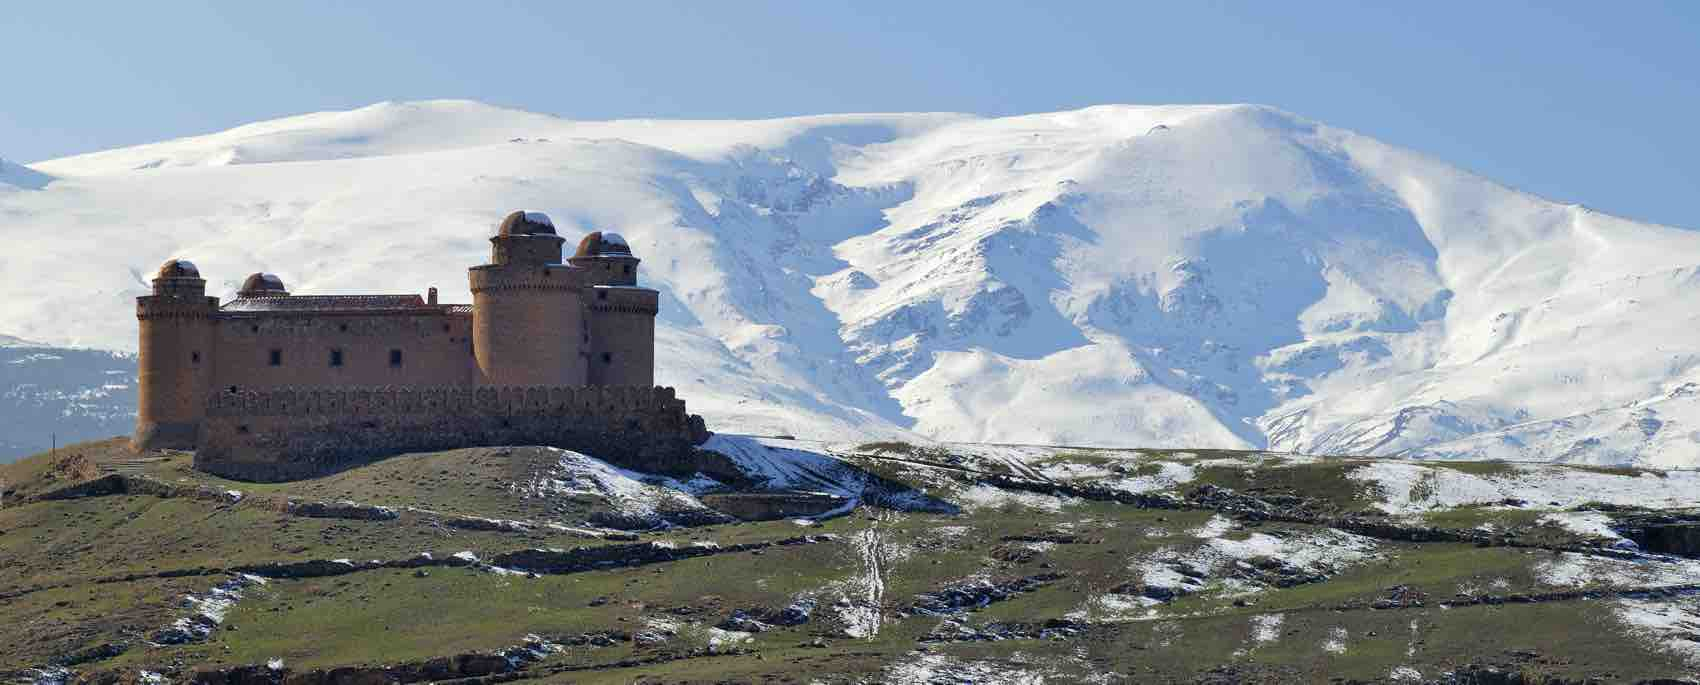 The imposing fortress of Calahorra, near the snowy mountain of Sierra Nevada